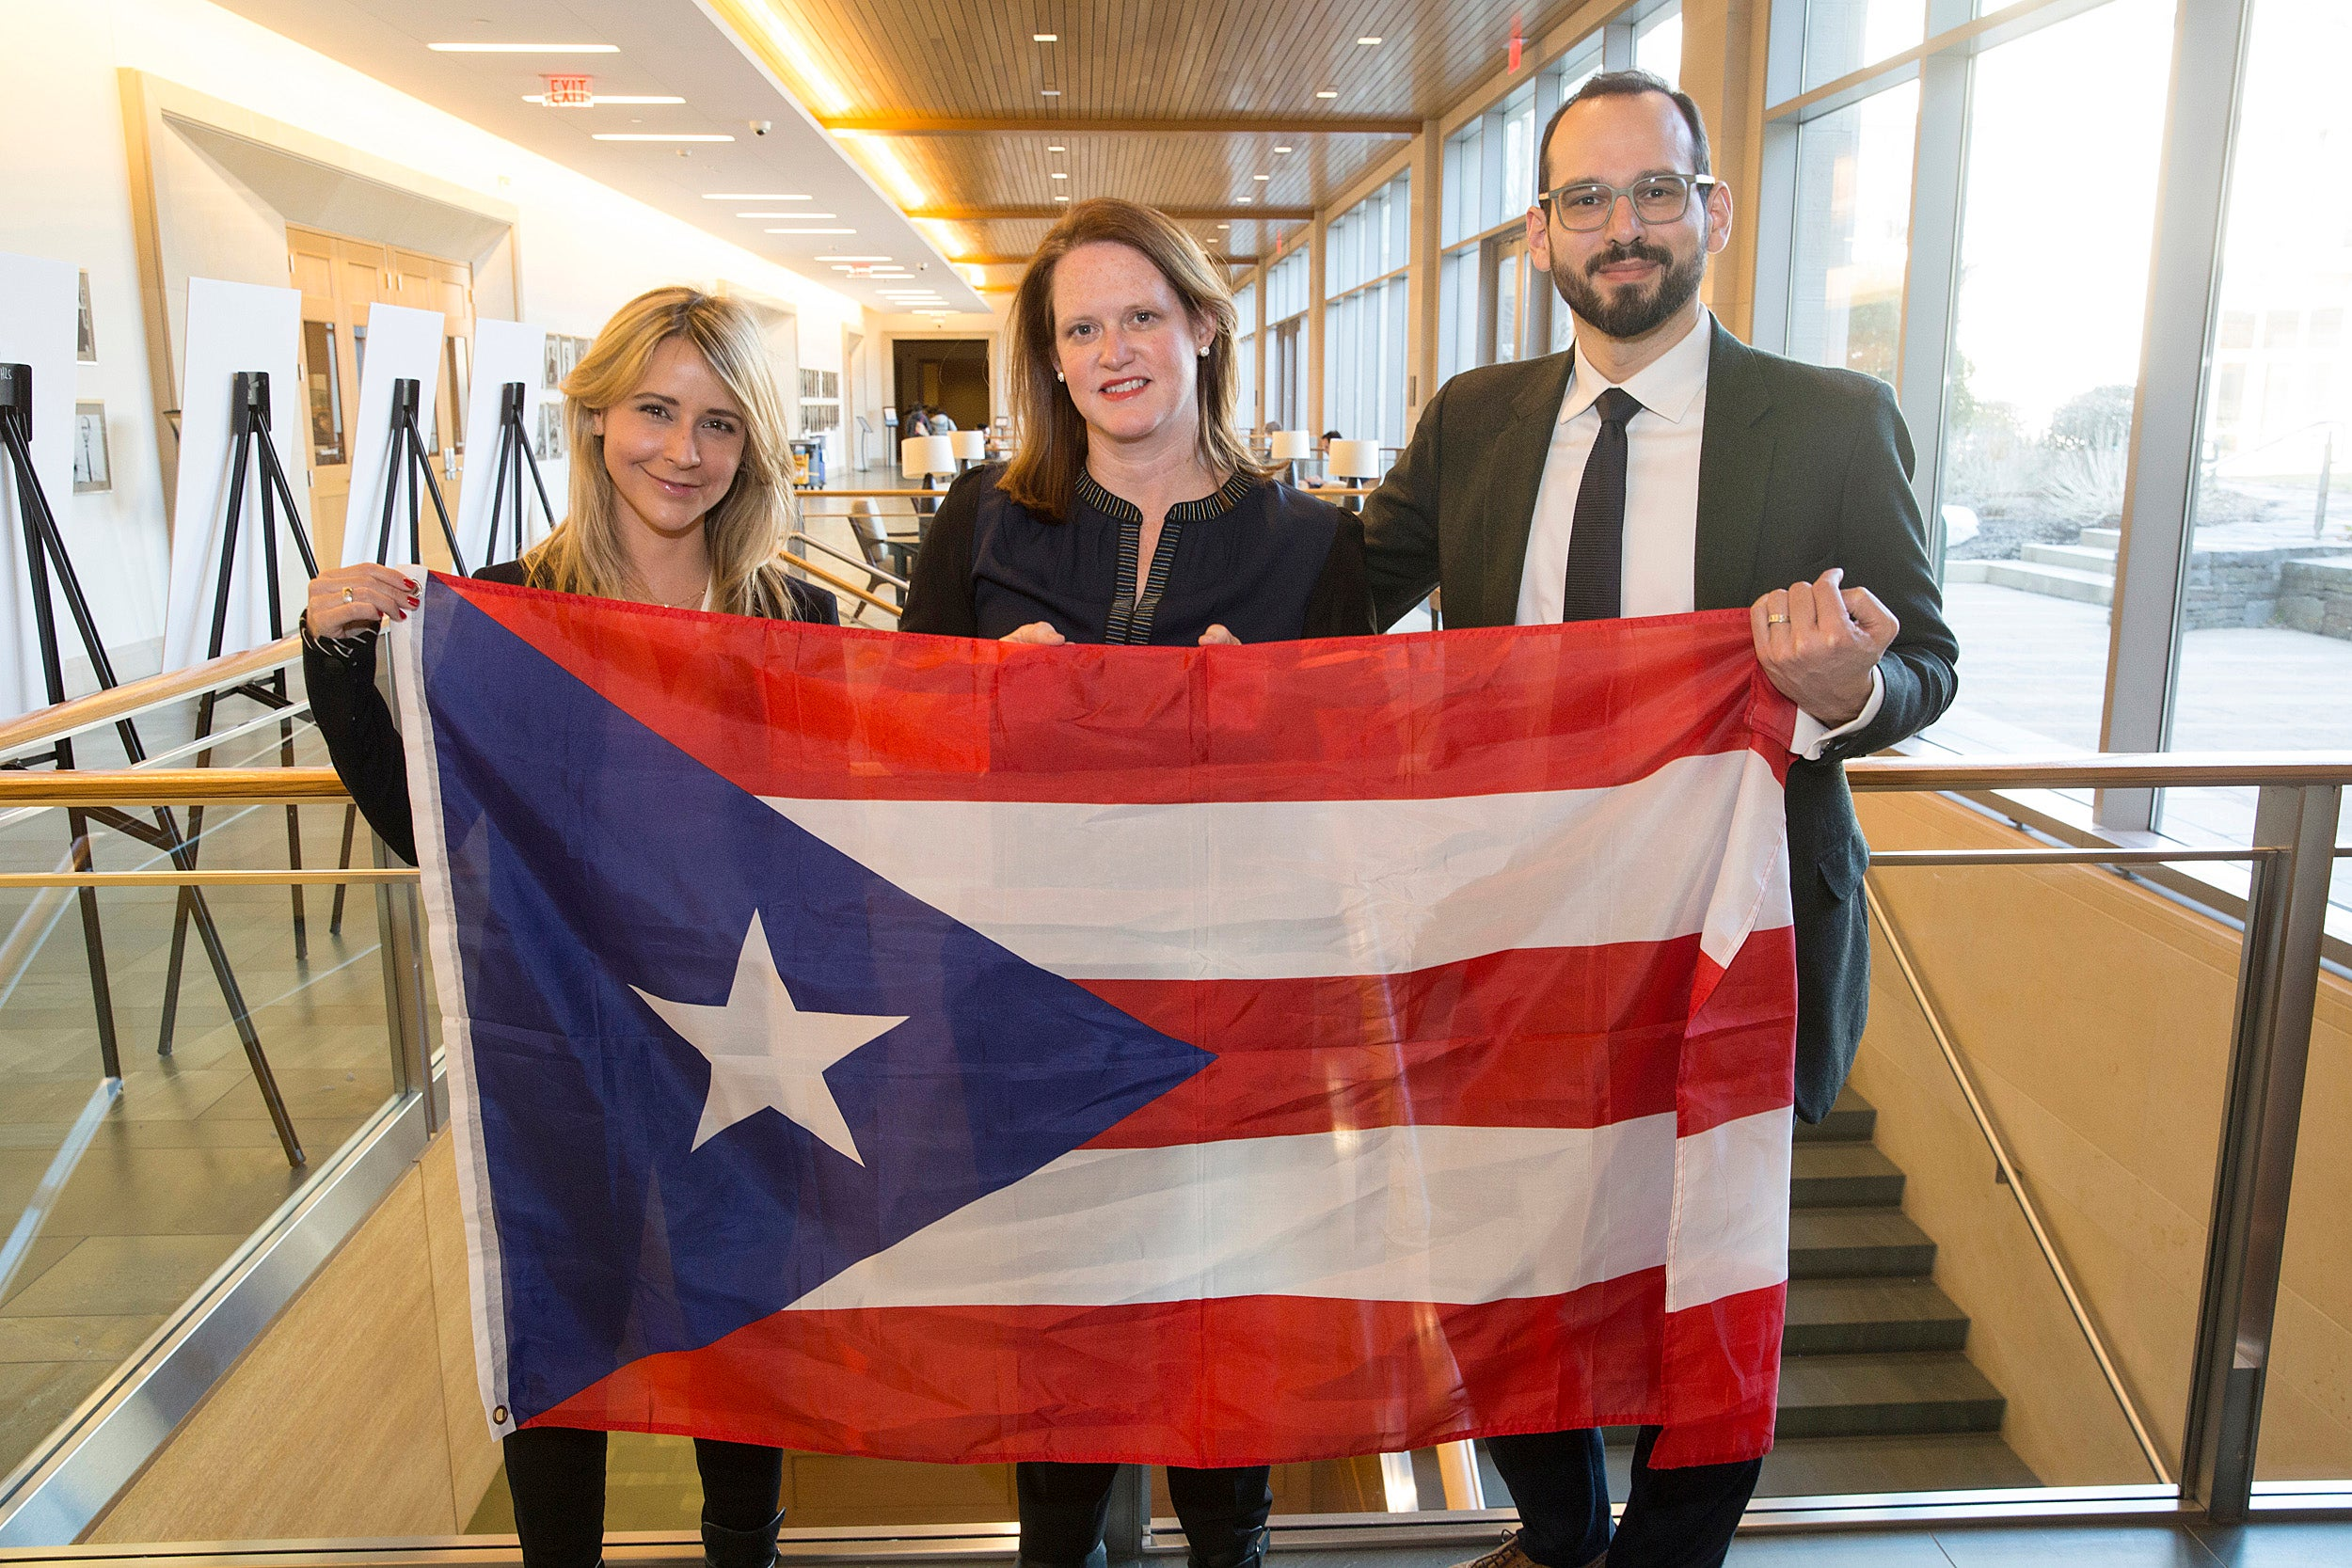 Natalie Trigo Reyes, J.D. '19 (from left), Lee Mestre, and Andrew Crespo '08, assistant professor of law, led a group of Law School students to Puerto Rico over spring break to offer legal aid to residents and help rebuild their homes and communities.